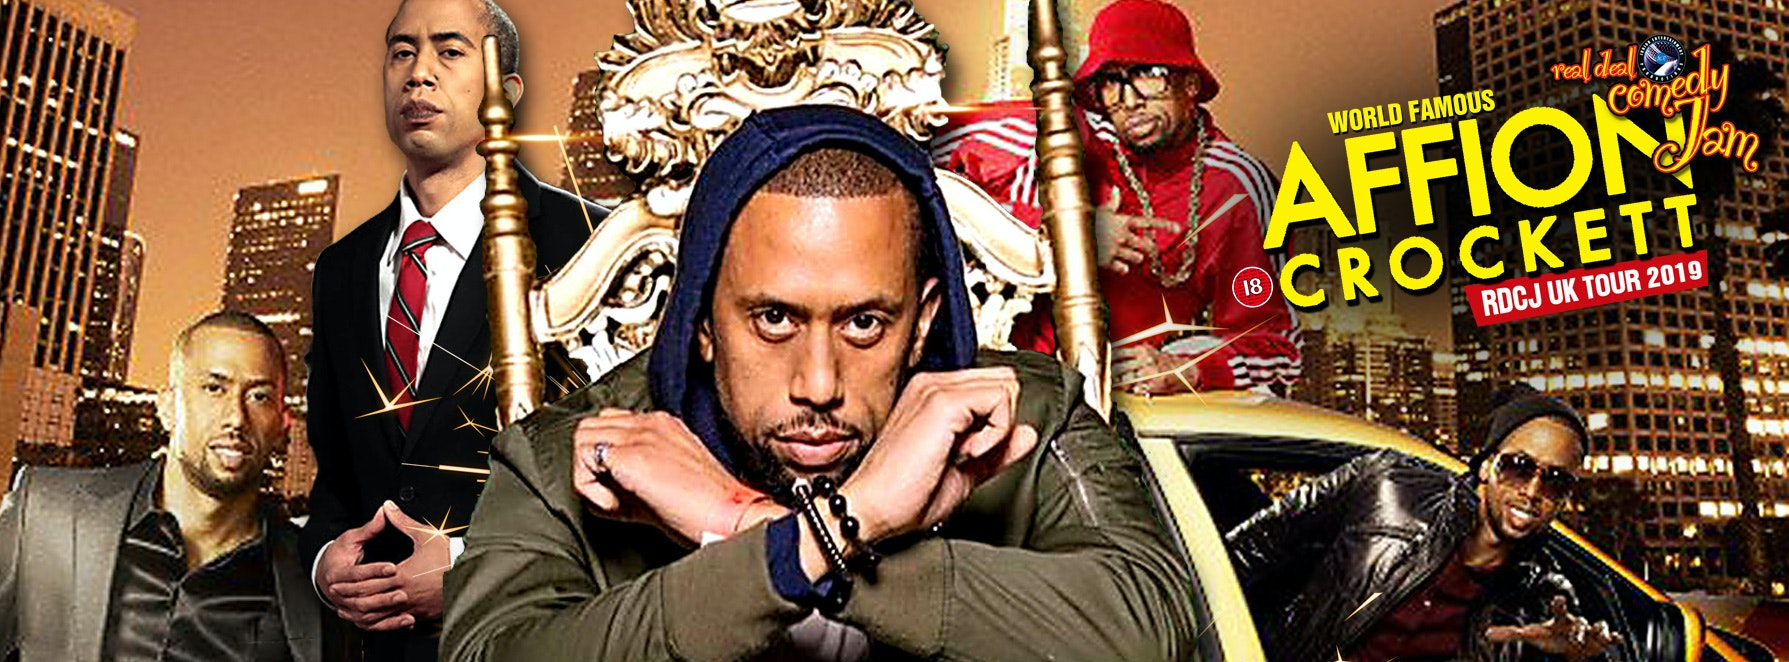 Affion Crockett Live in Leeds – Real Deal Comedy Jam Tour